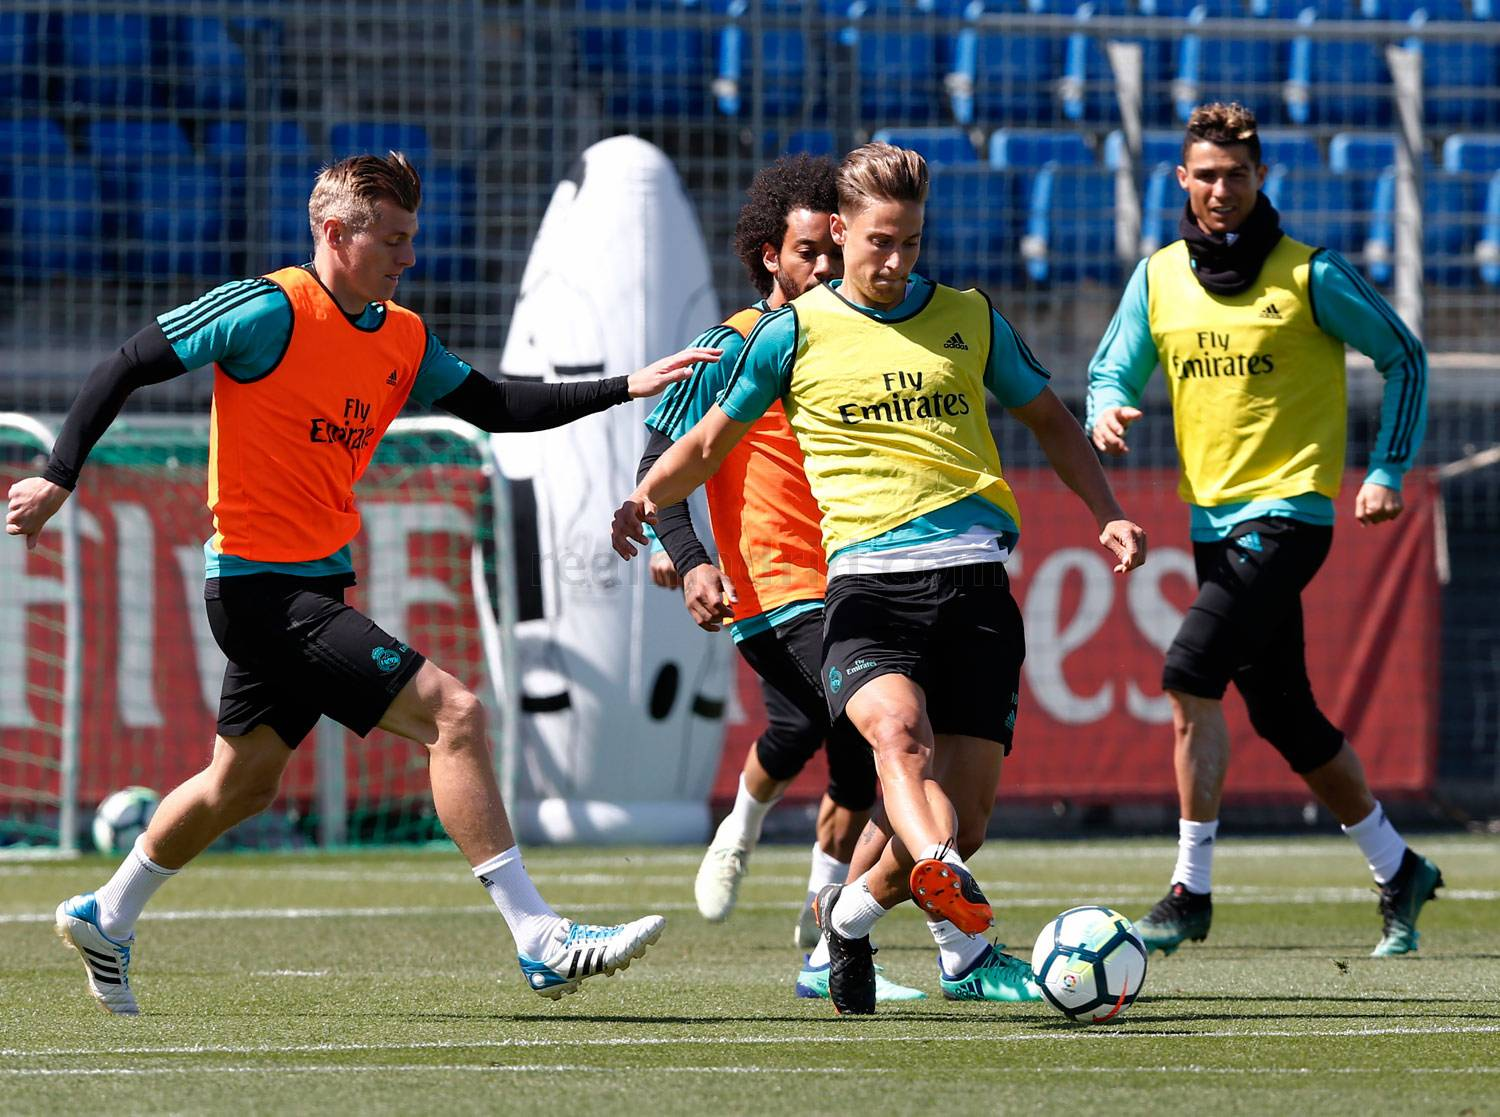 Real Madrid - Entrenamiento del Real Madrid - 04-05-2018